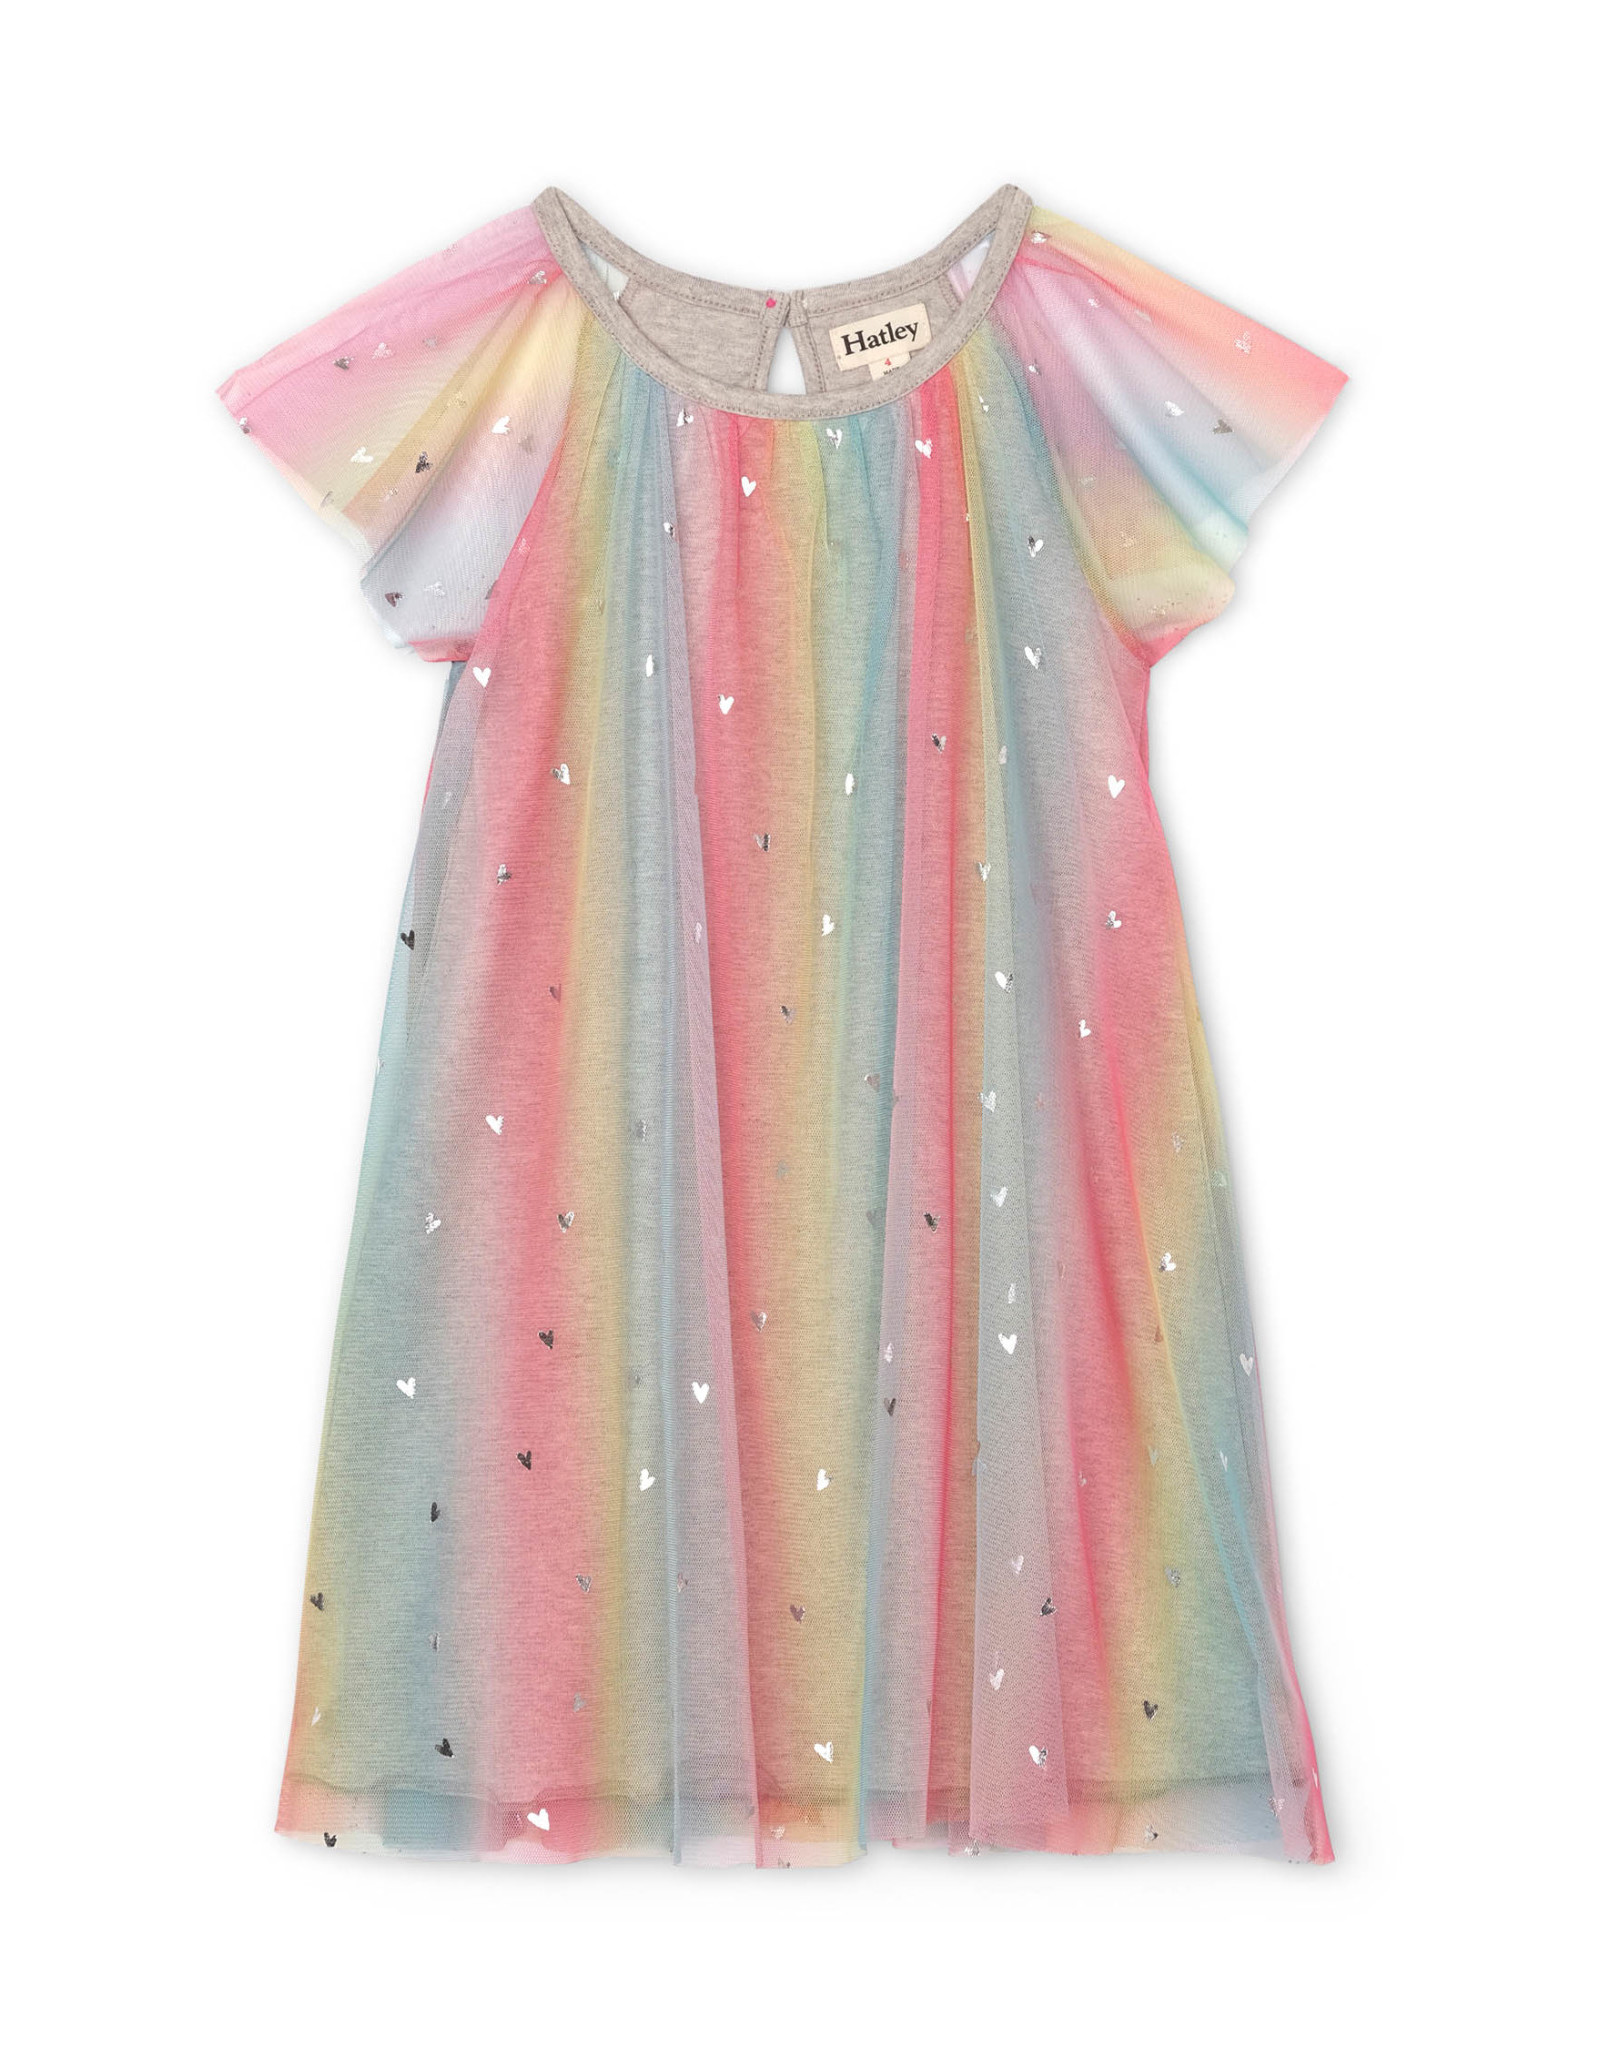 LITTLE BLUE HOUSE (HATLEY) METALLIC HEARTS RAINBOW TULLE DRESS